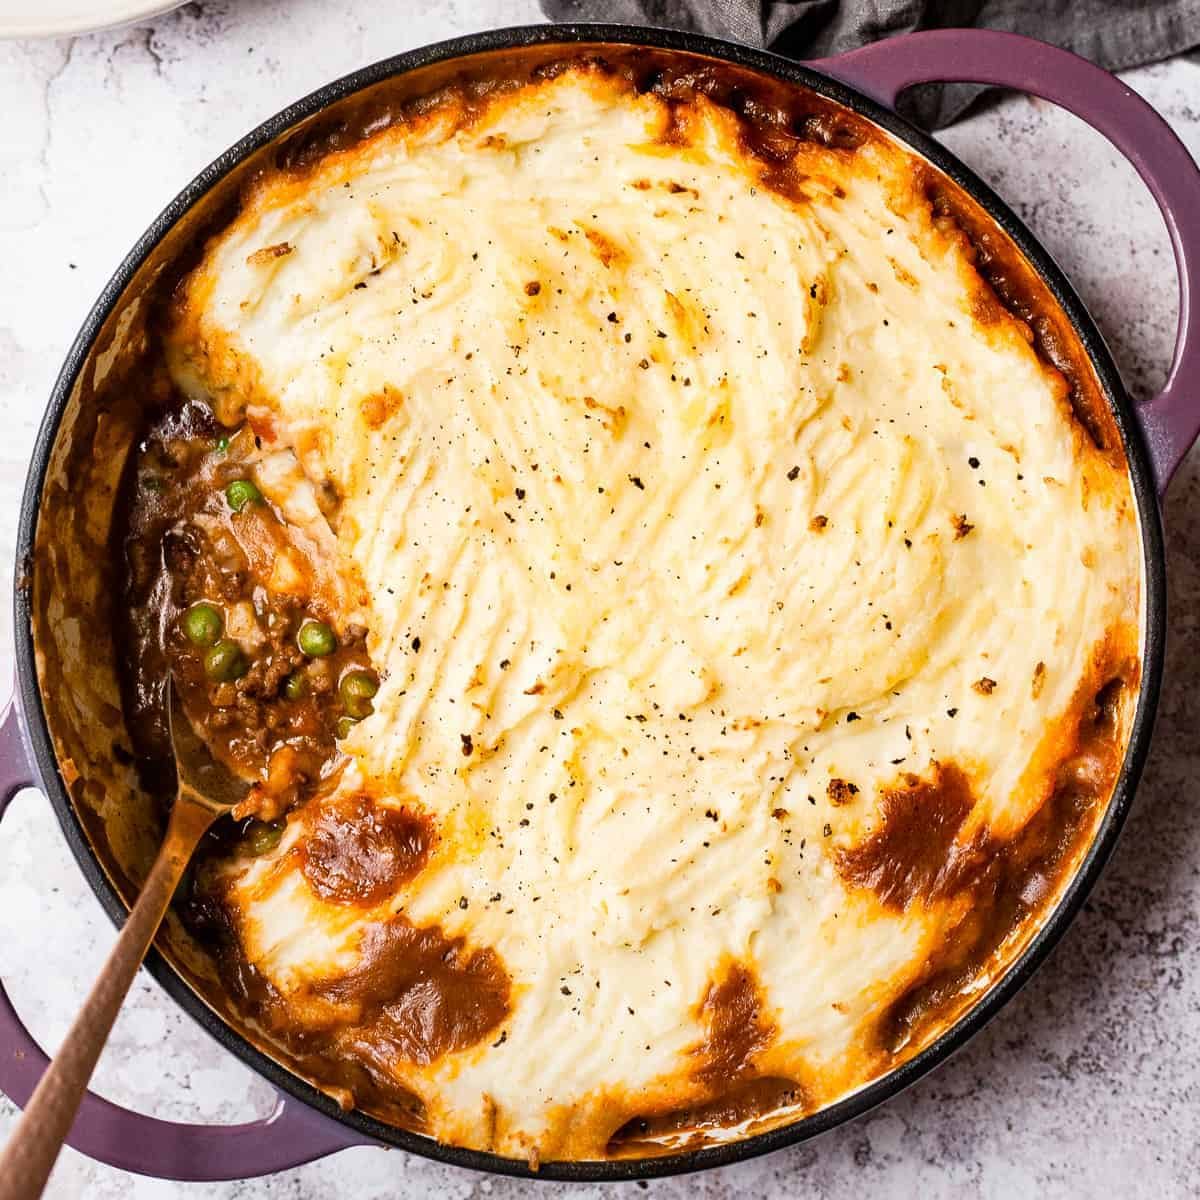 Cottage pie with a spoon in it and a napkin.